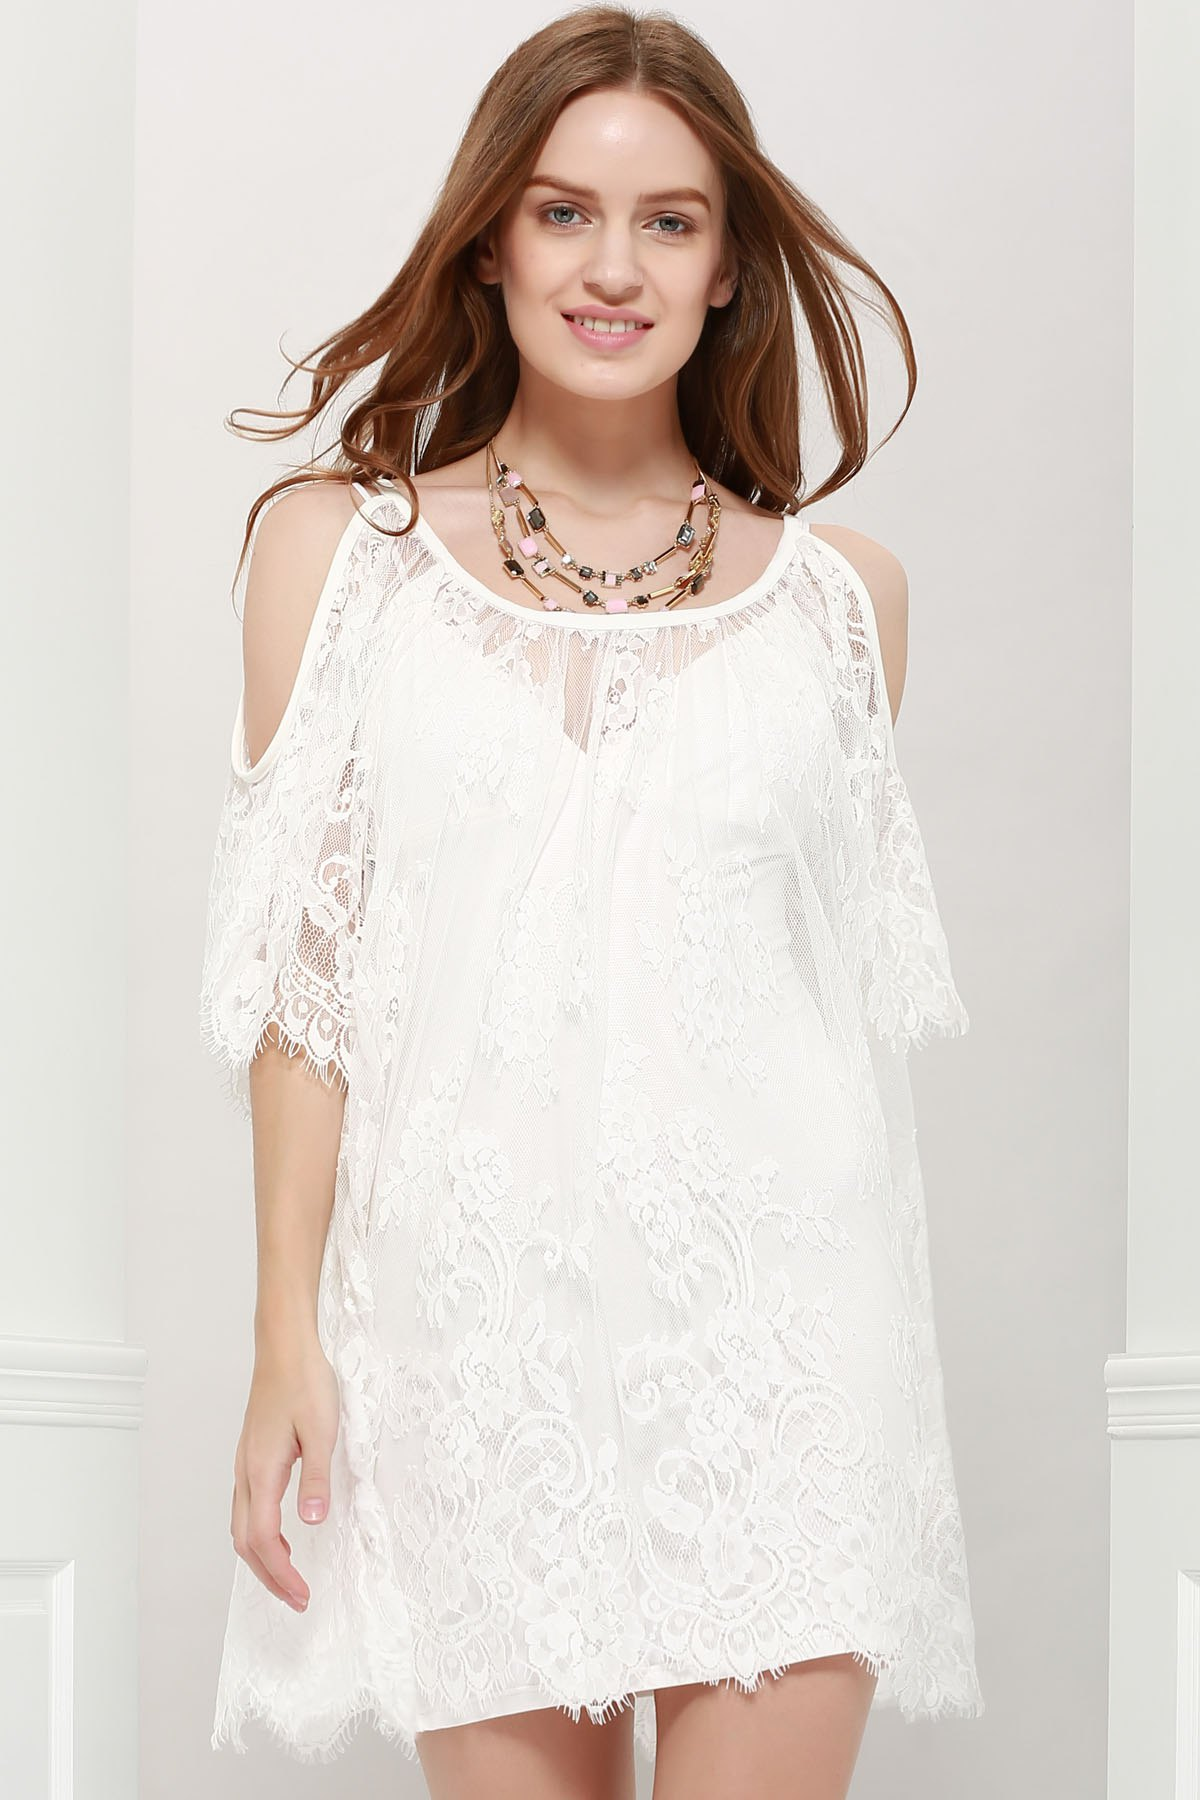 Fashion Ladylike Scoop Neck Off-The-Shoulder Lace See-Through Dress For Women